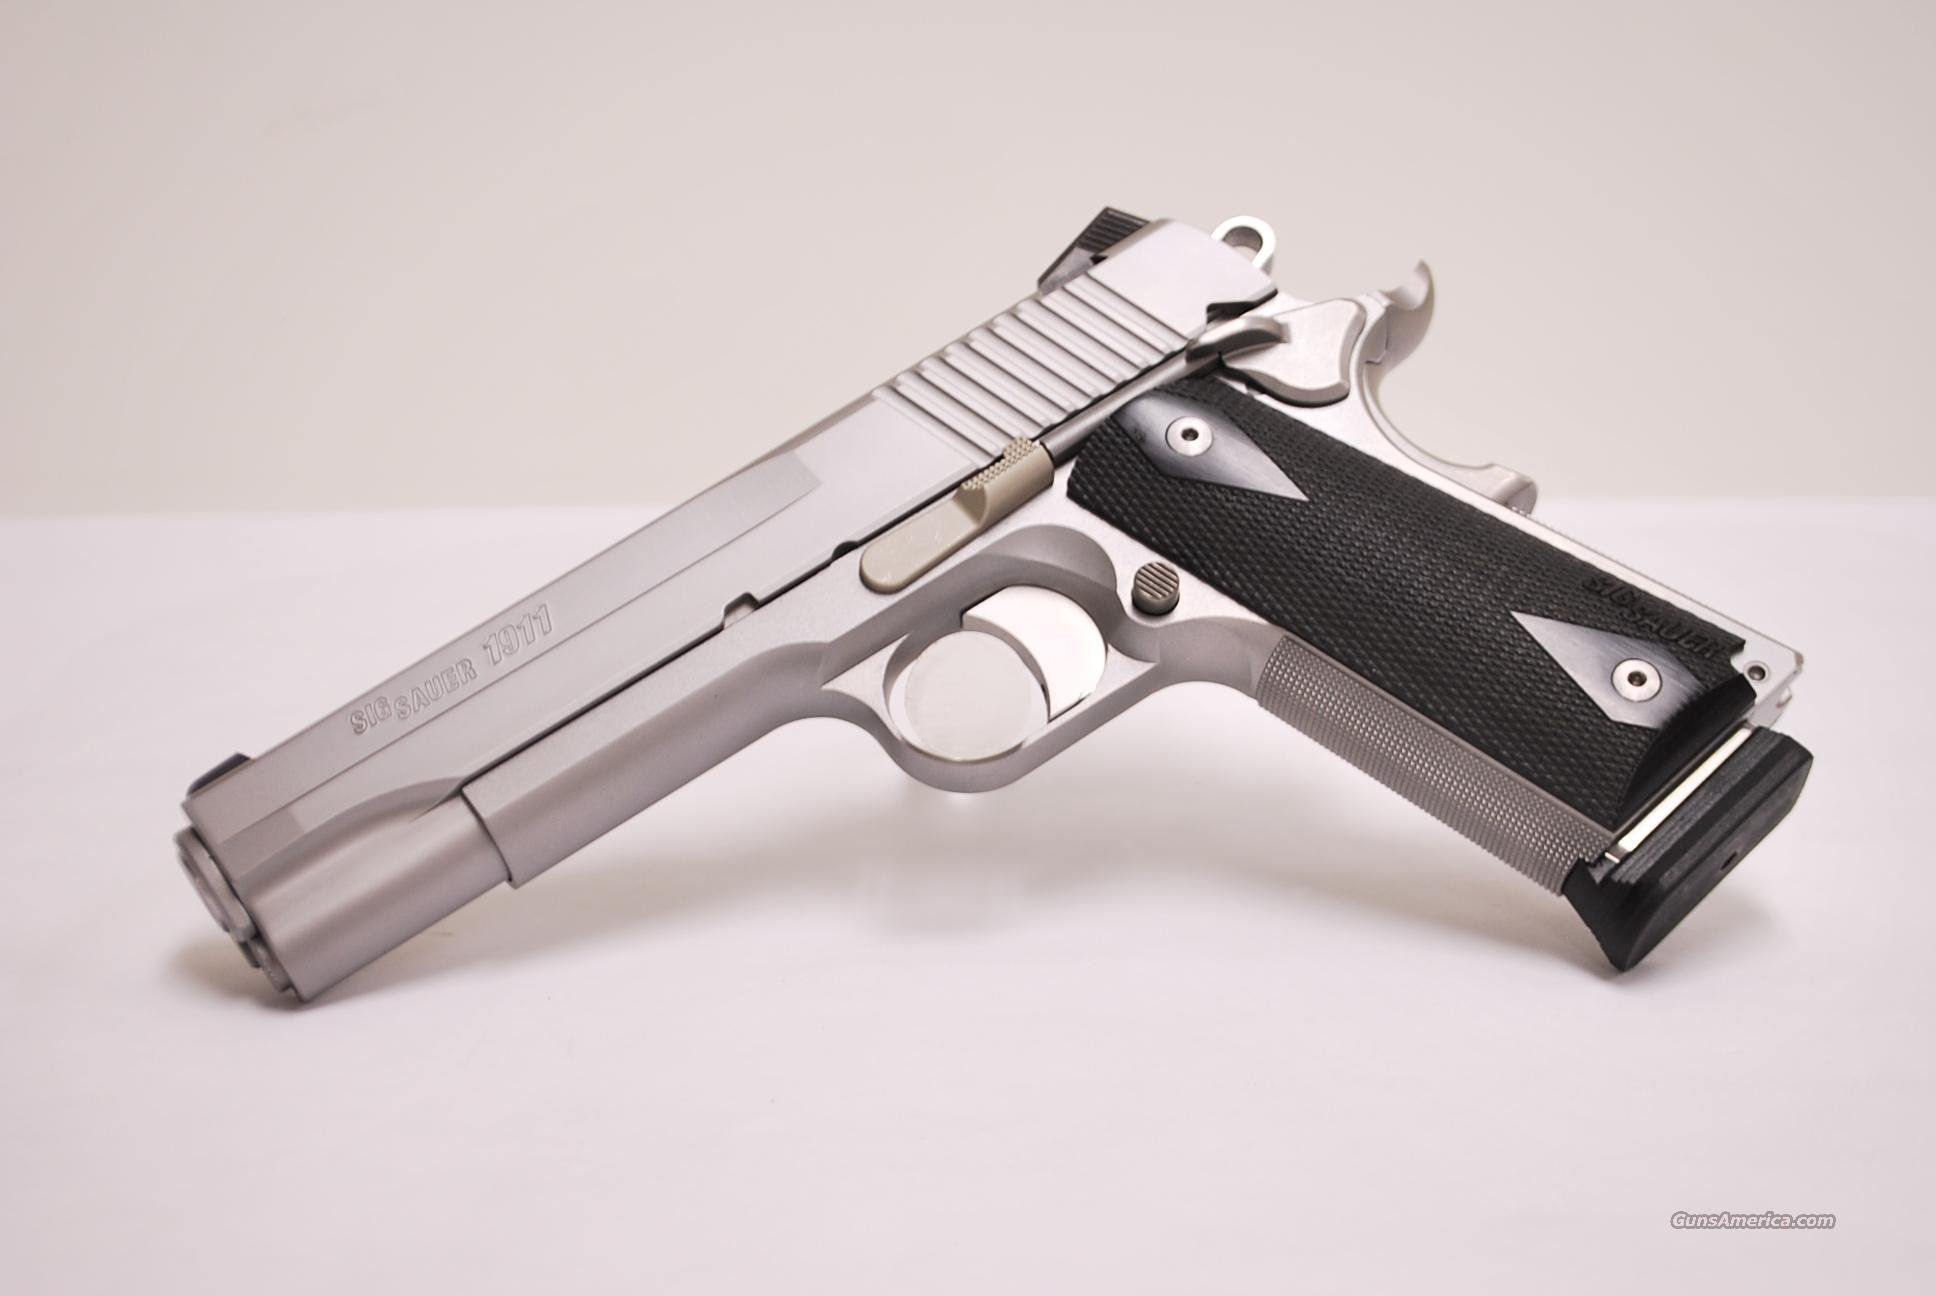 Sig Sauer Stainless 1911, 45 ACP  Guns > Pistols > Sig - Sauer/Sigarms Pistols > 1911